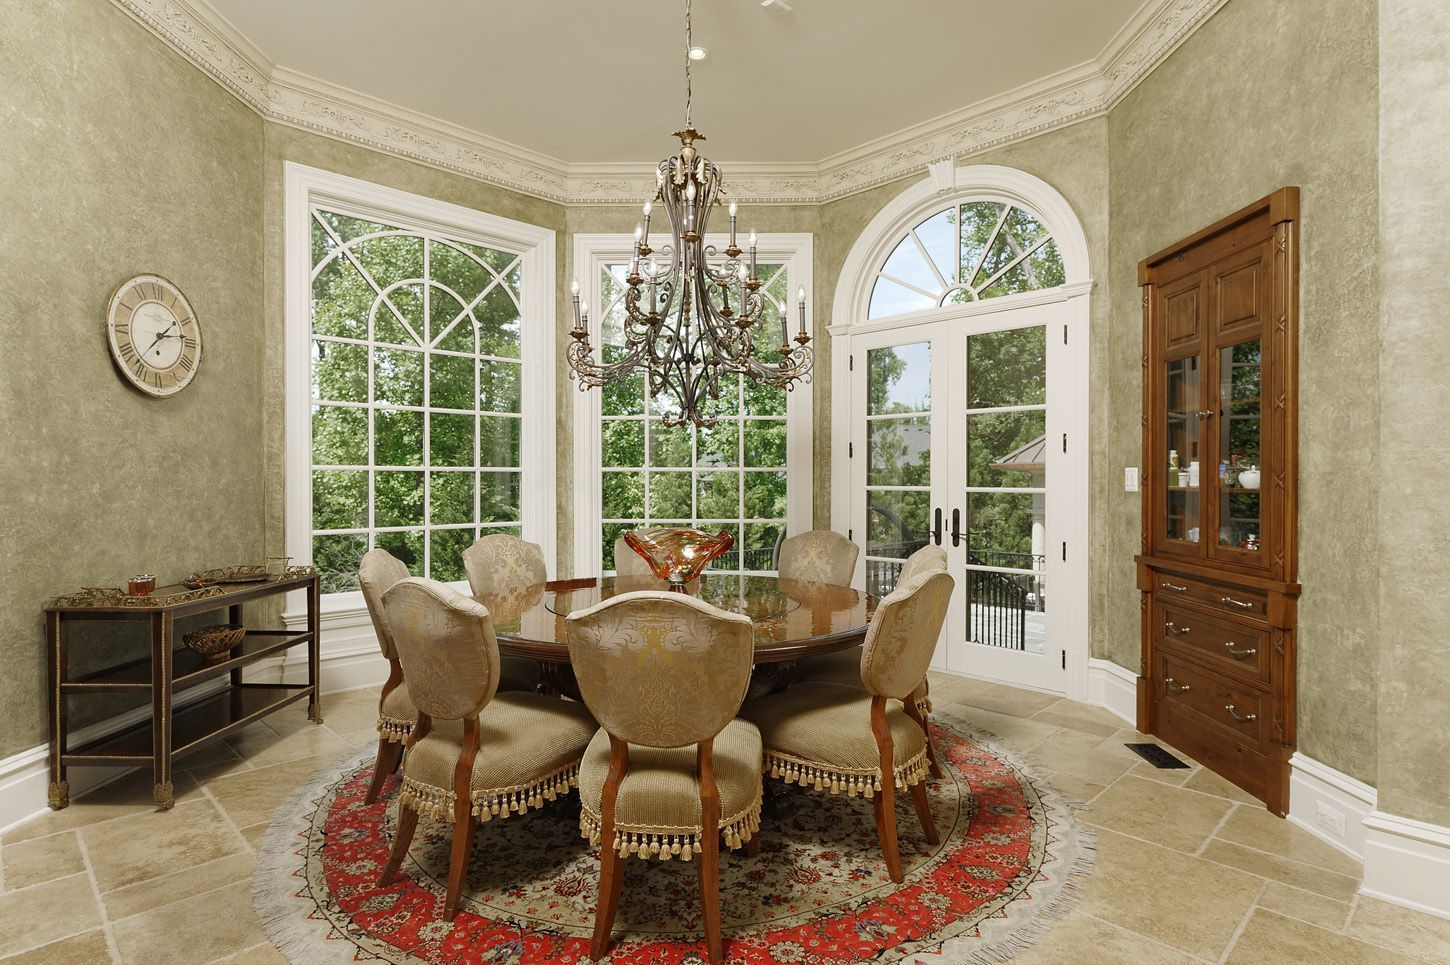 This 12 5 Million Mclean Mansion Has A Ballroom And An Indoor Basketball Court Washingtonian Dc Indoor Basketball Court Mansions Indoor